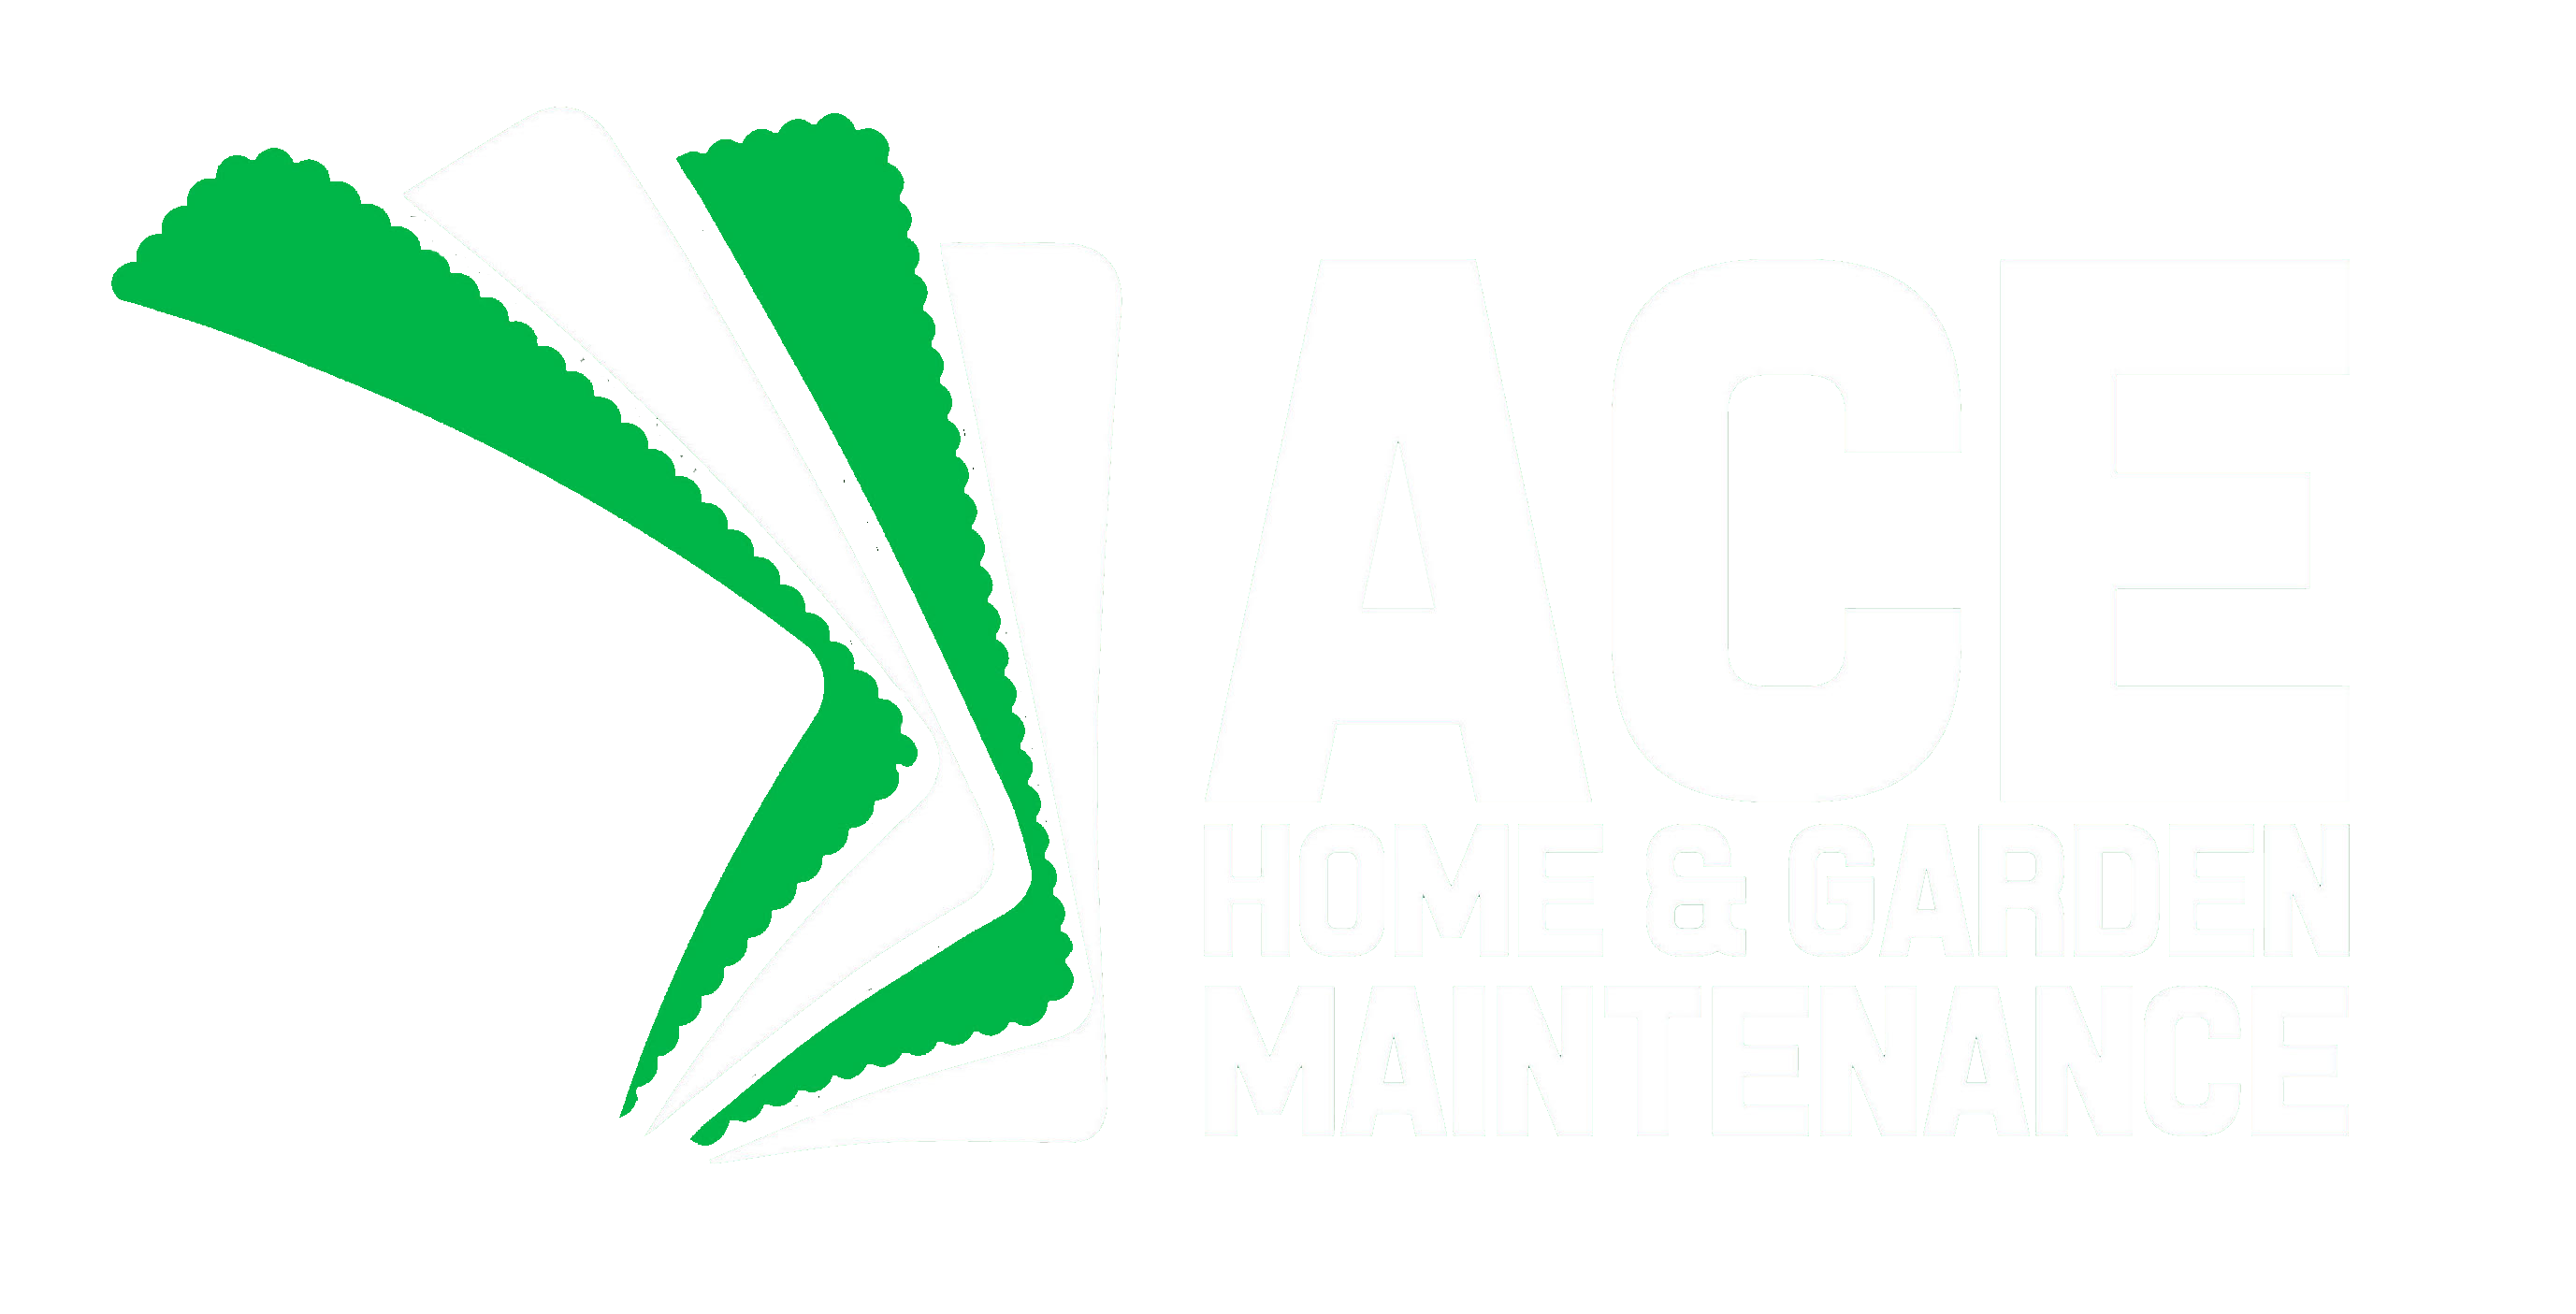 ACE LOGO transparent